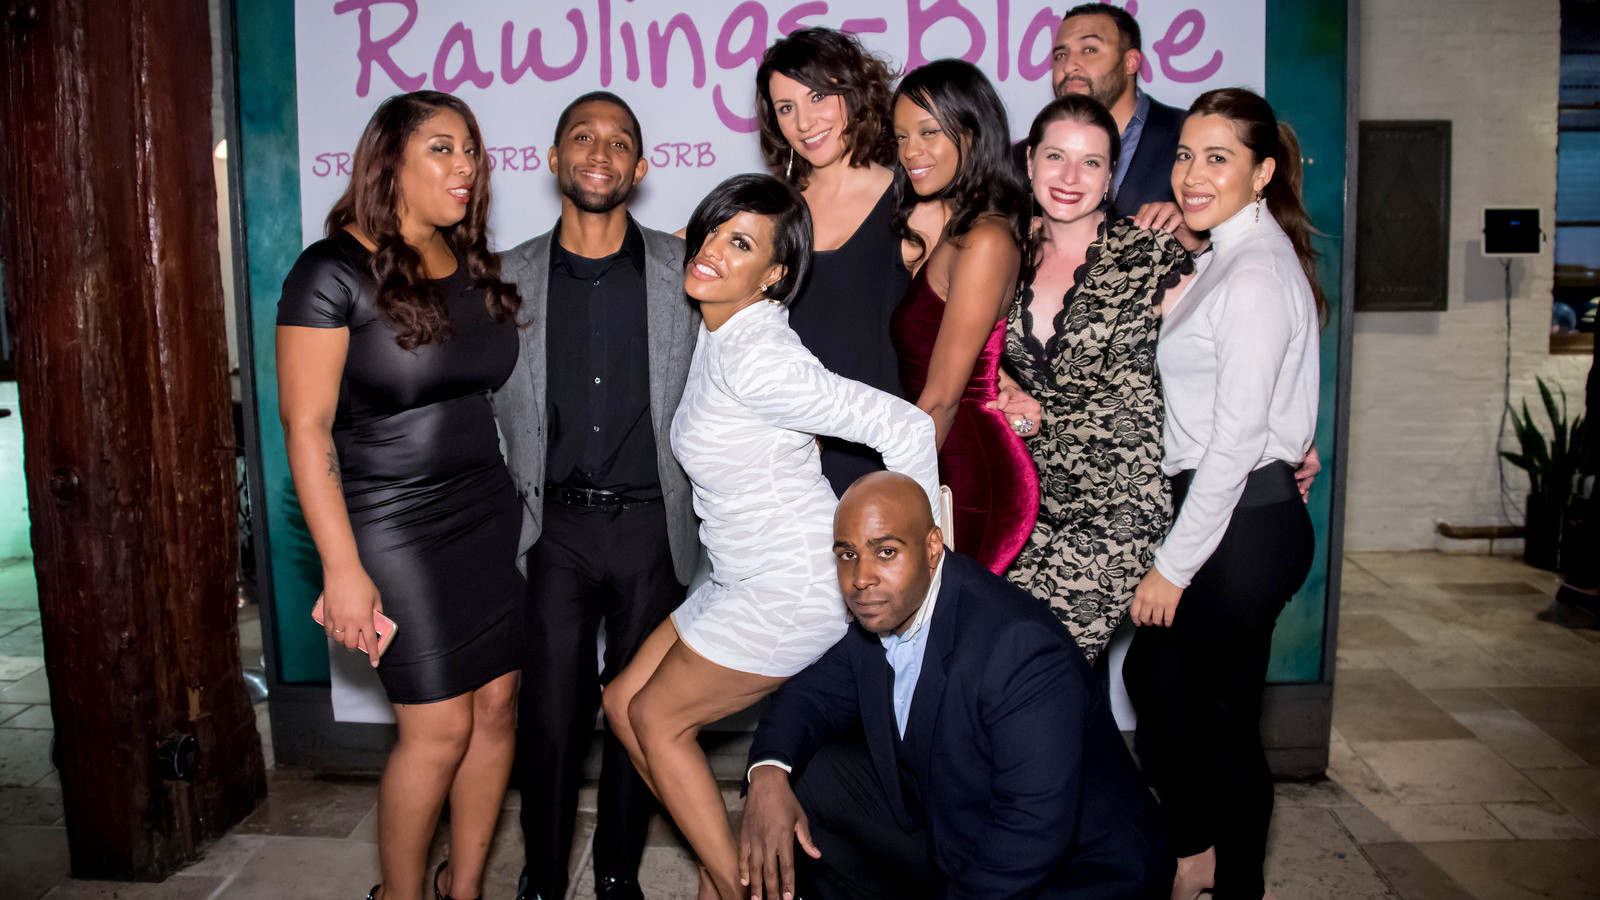 Rawlings-Blake, in white, poses with guests including Brandon Scott (2nd from left) and Kaliope Parthemos (back row, center)